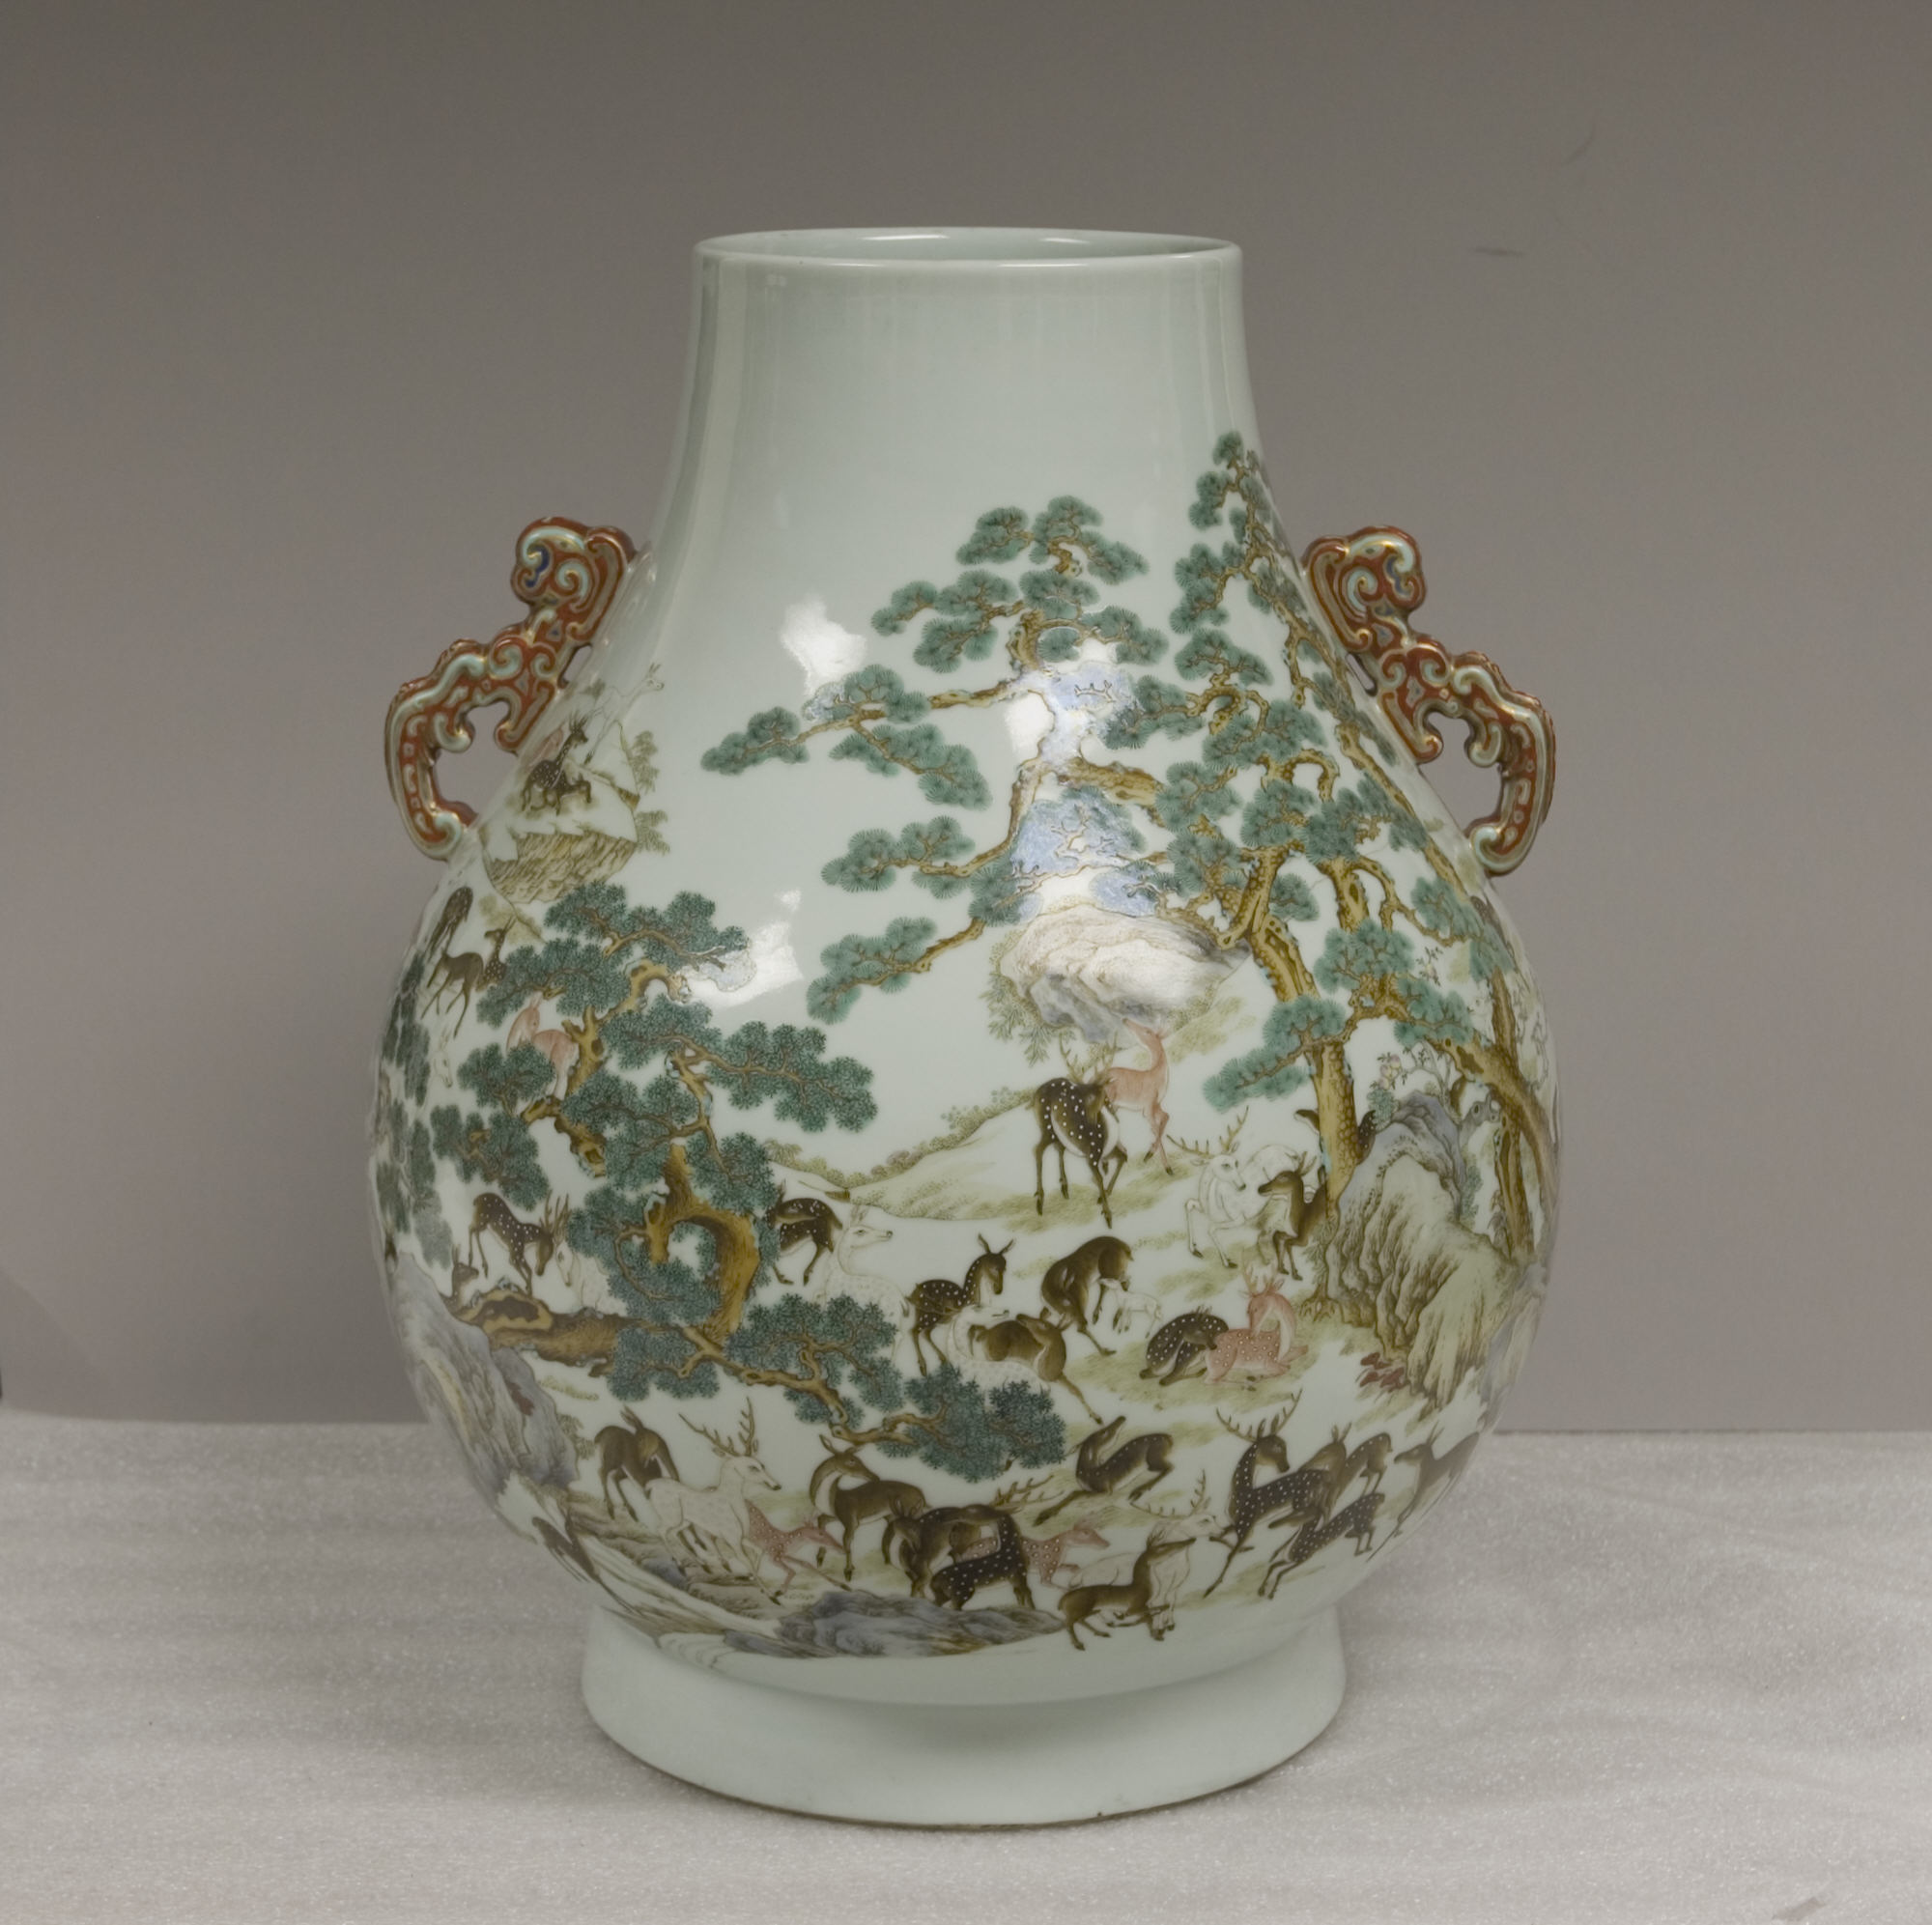 Vase with poems composed by the qianlong emperor china qing vase with one hundred deer motif reviewsmspy